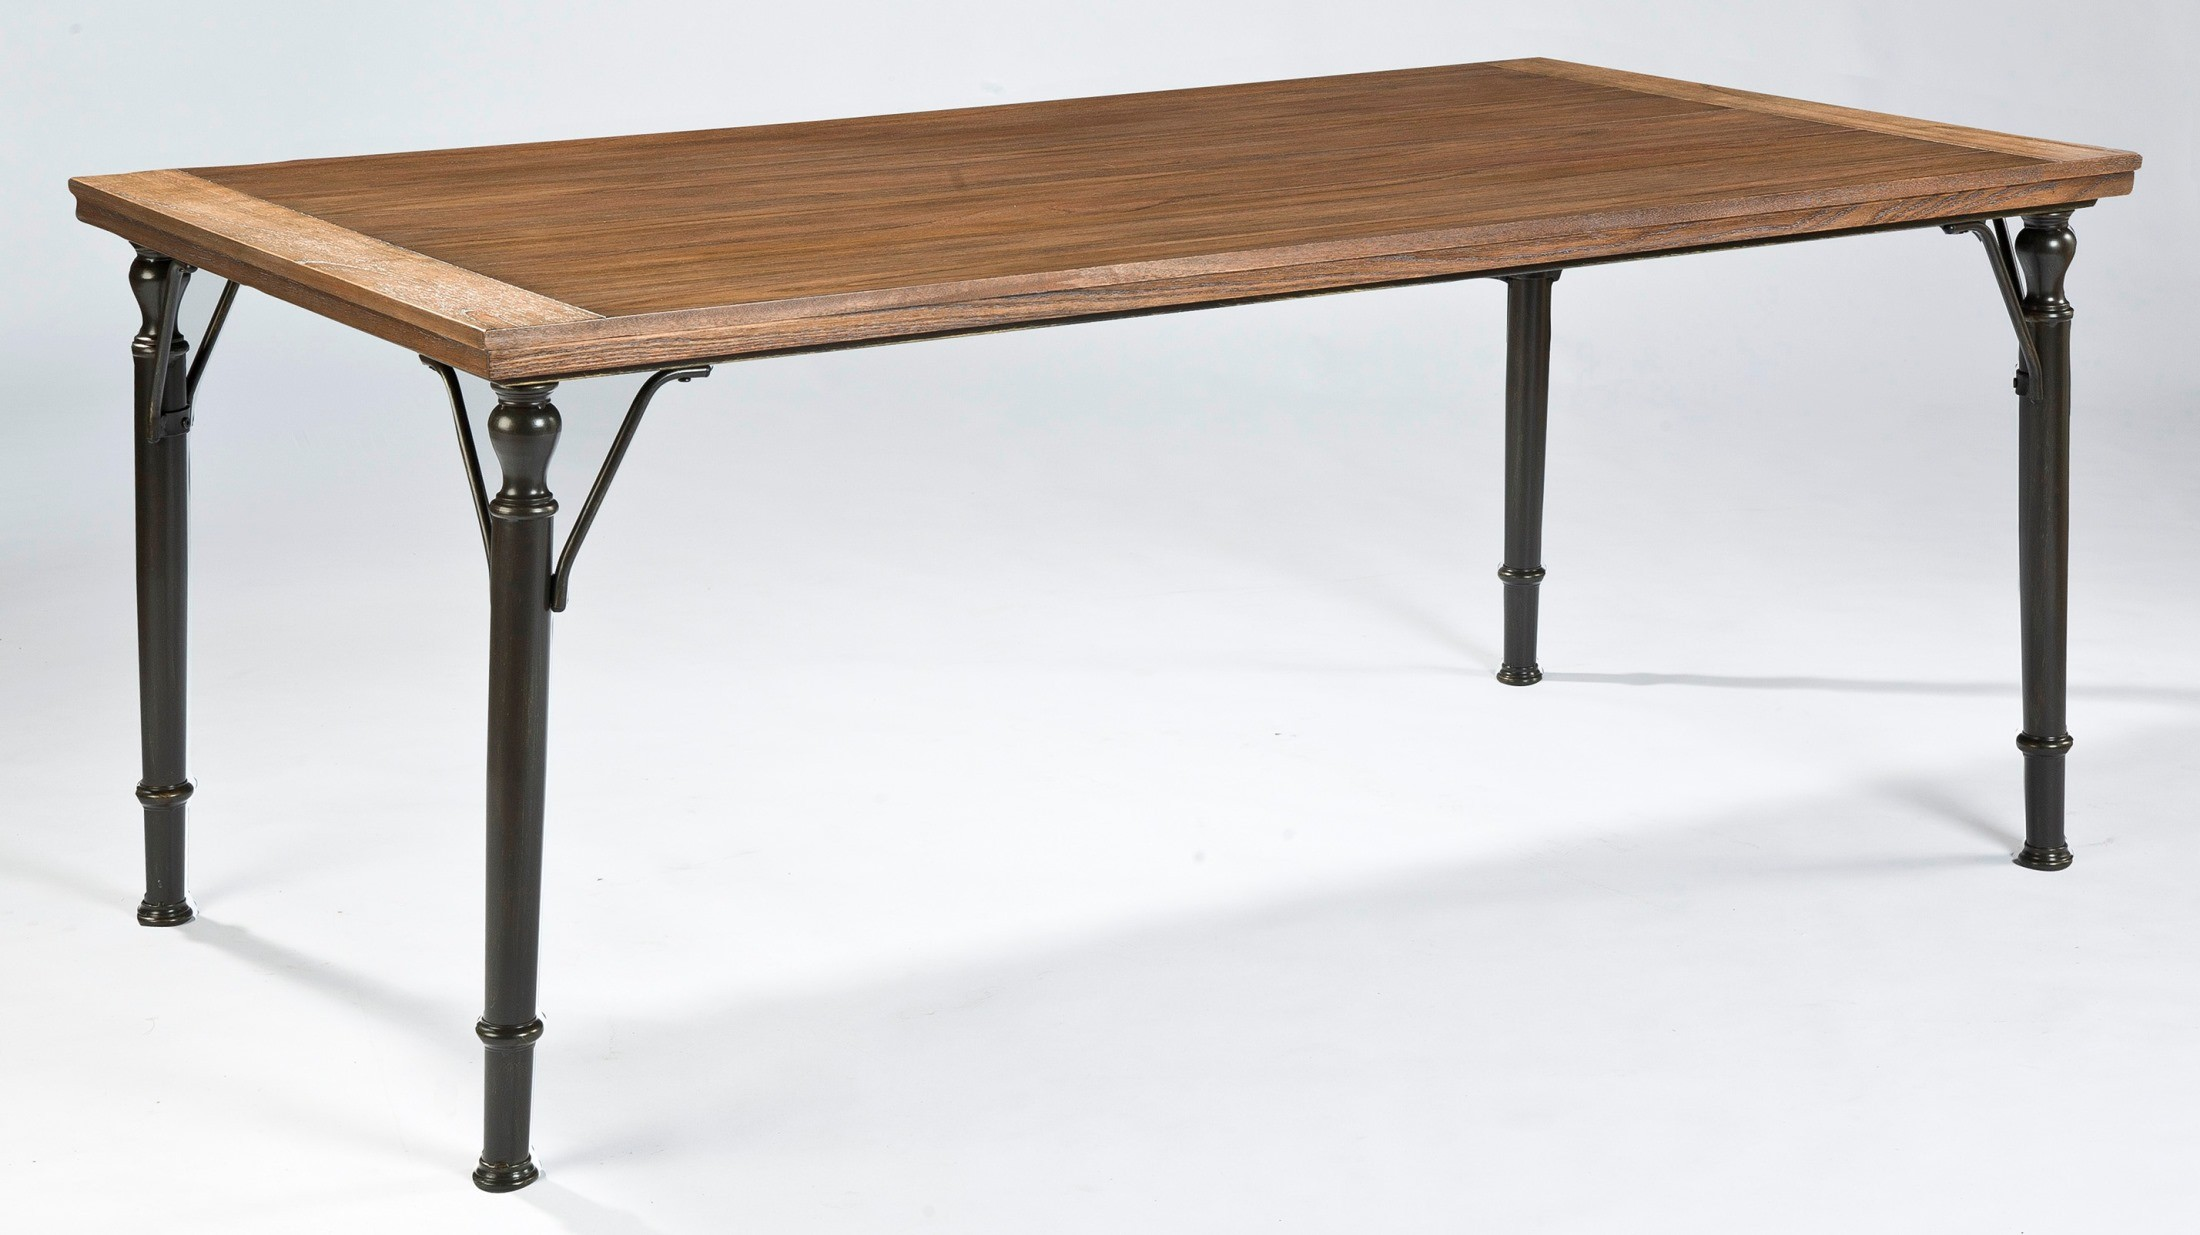 Tripton rectangular dining room table from ashley d530 25 coleman furniture - Rectangular dining table for 6 ...